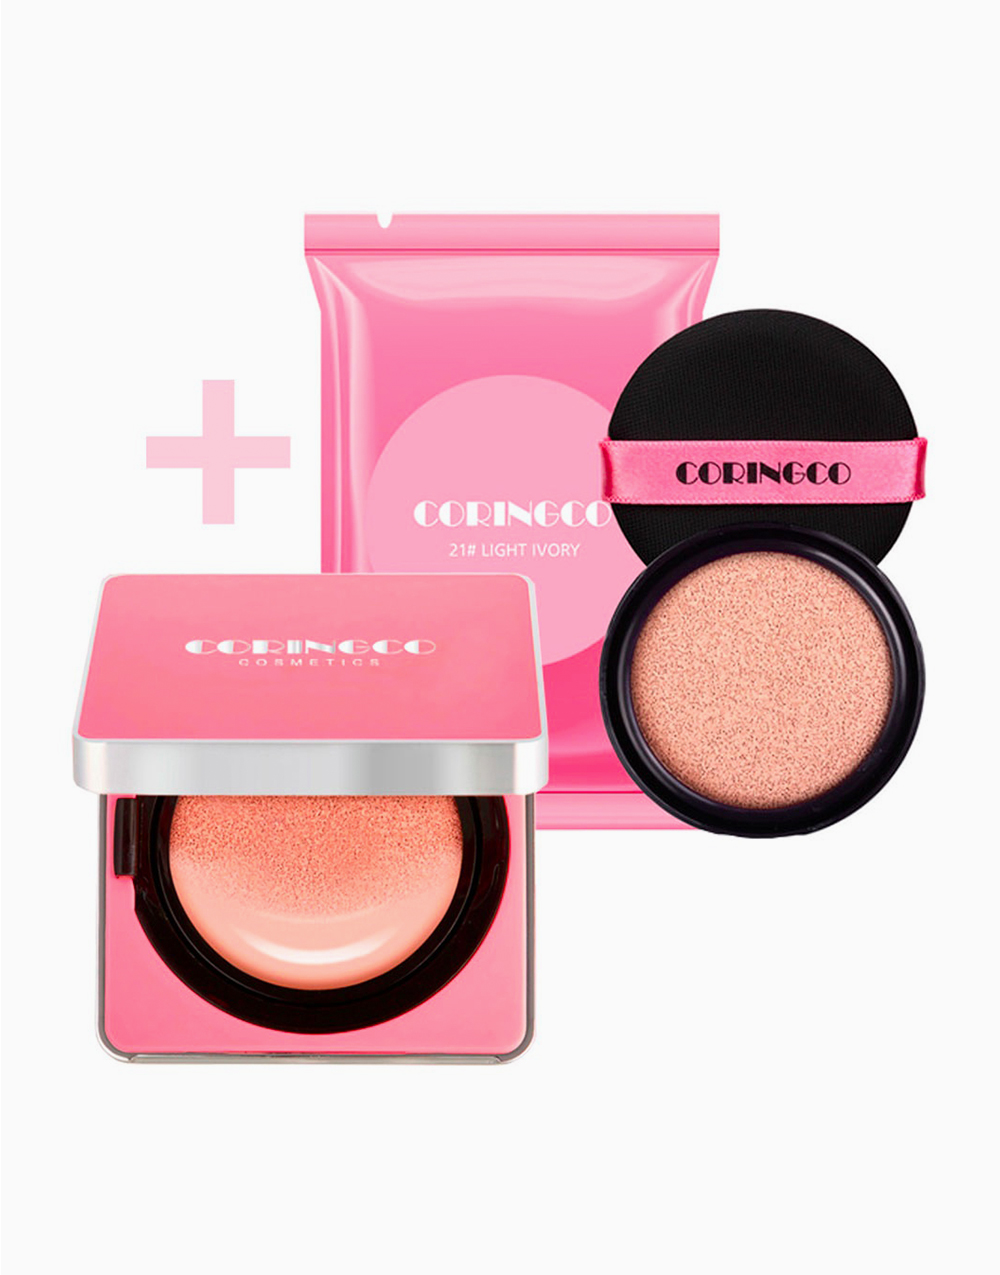 Cherry Blossom Water BB Cushion with Refill by Coringco | #21 Light Ivory